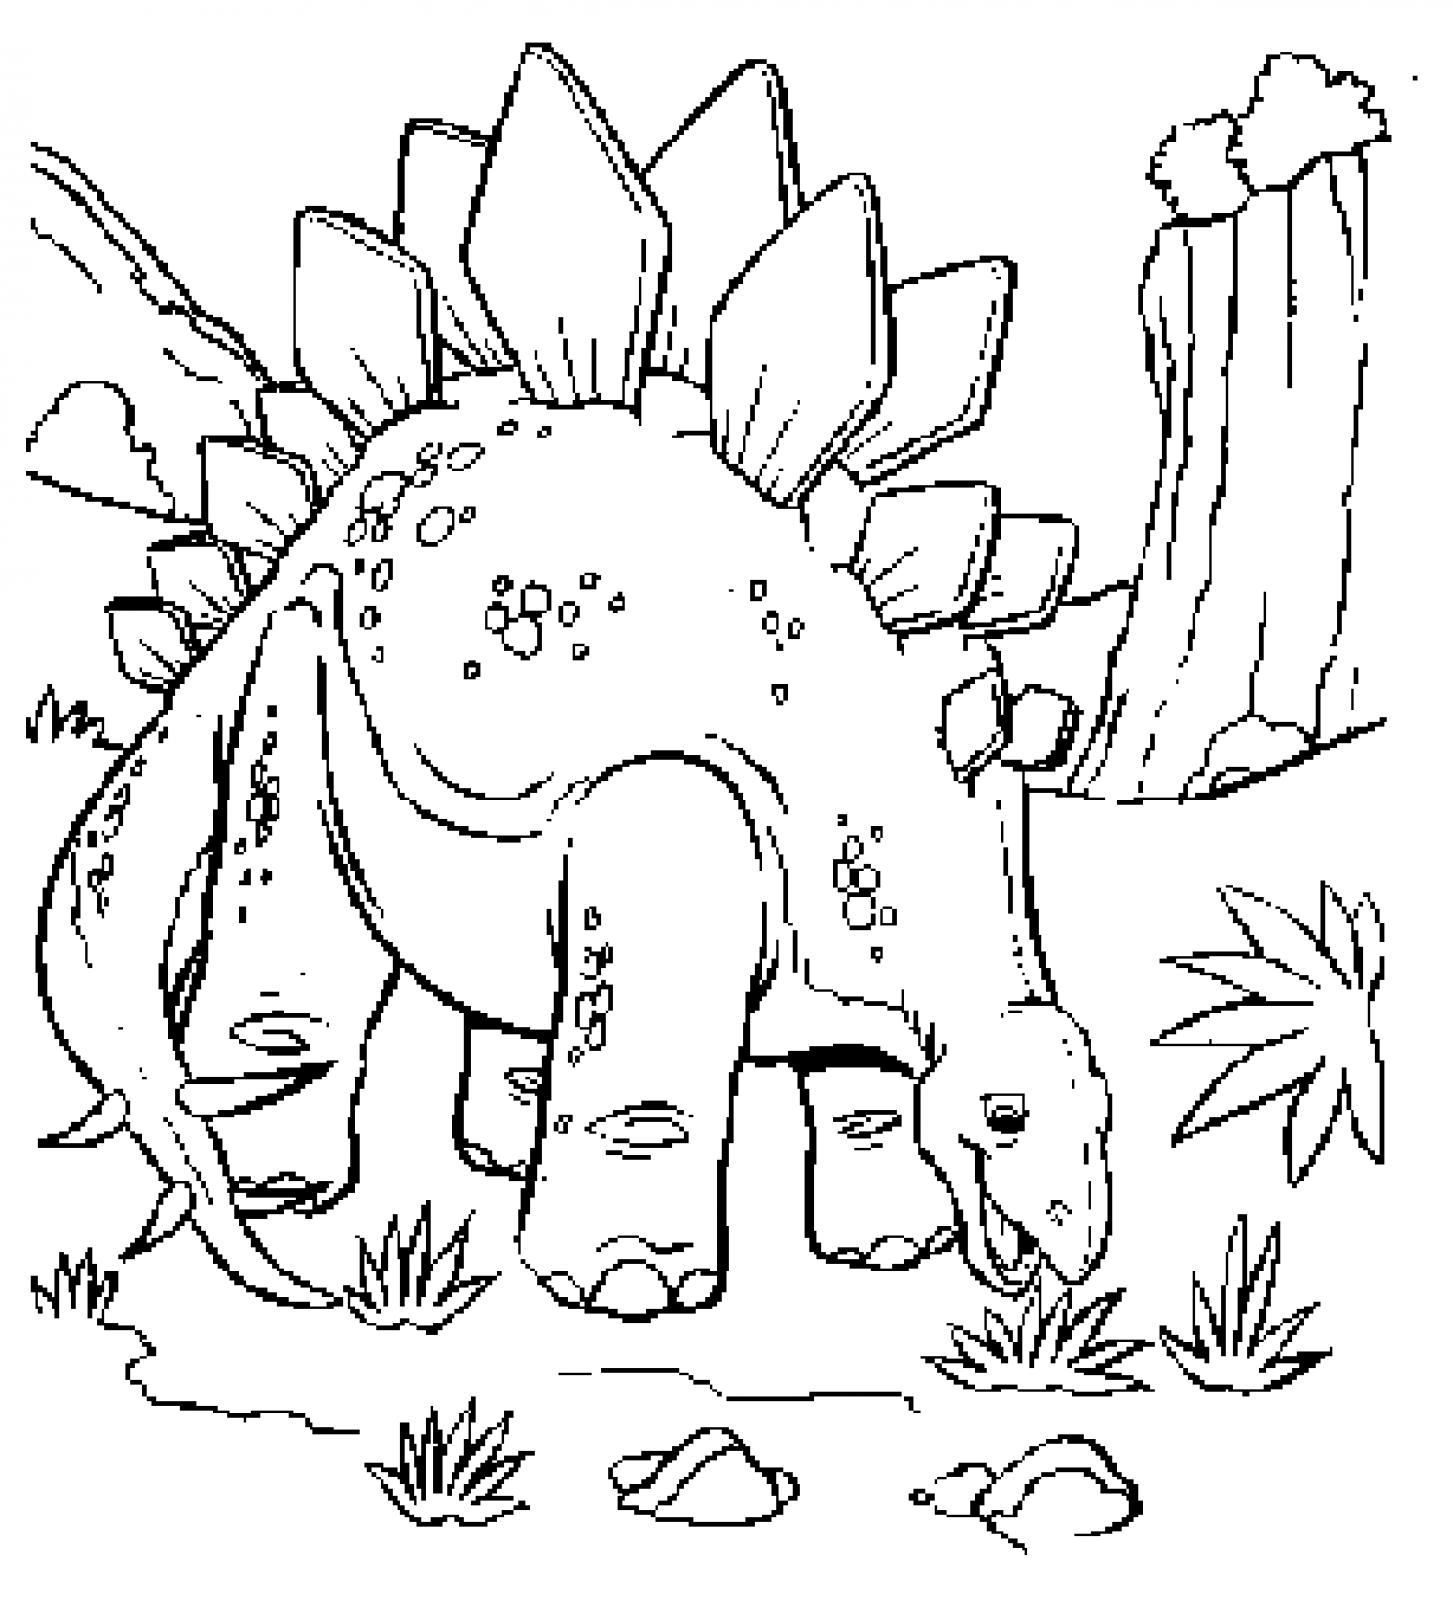 Free Colouring Pages Dinosaurs Dinosaur Printable Coloring Pages Dinosaur Coloring Pages Dinosaur Coloring Sheets Cartoon Coloring Pages